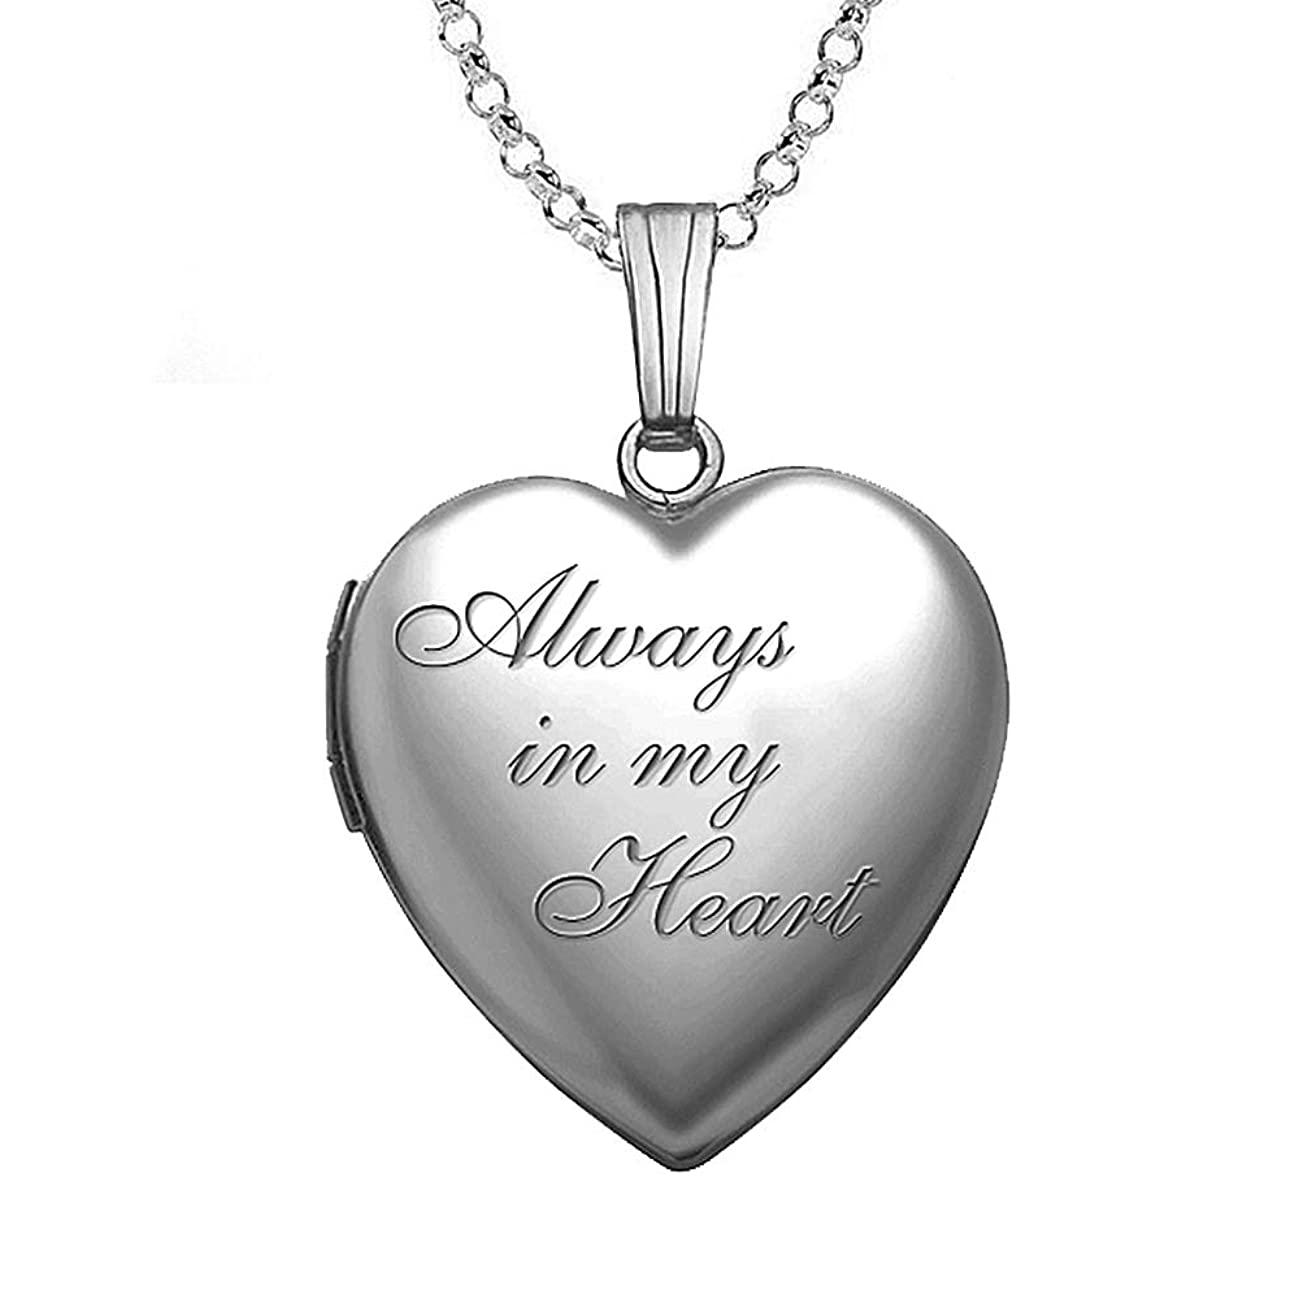 PicturesOnGold.com Always in My Heart Silver Heart Locket Pendant Necklace - 3/4 Inch X 3/4 Inch - Includes Sterling Silver 18 inch Cable Chain.